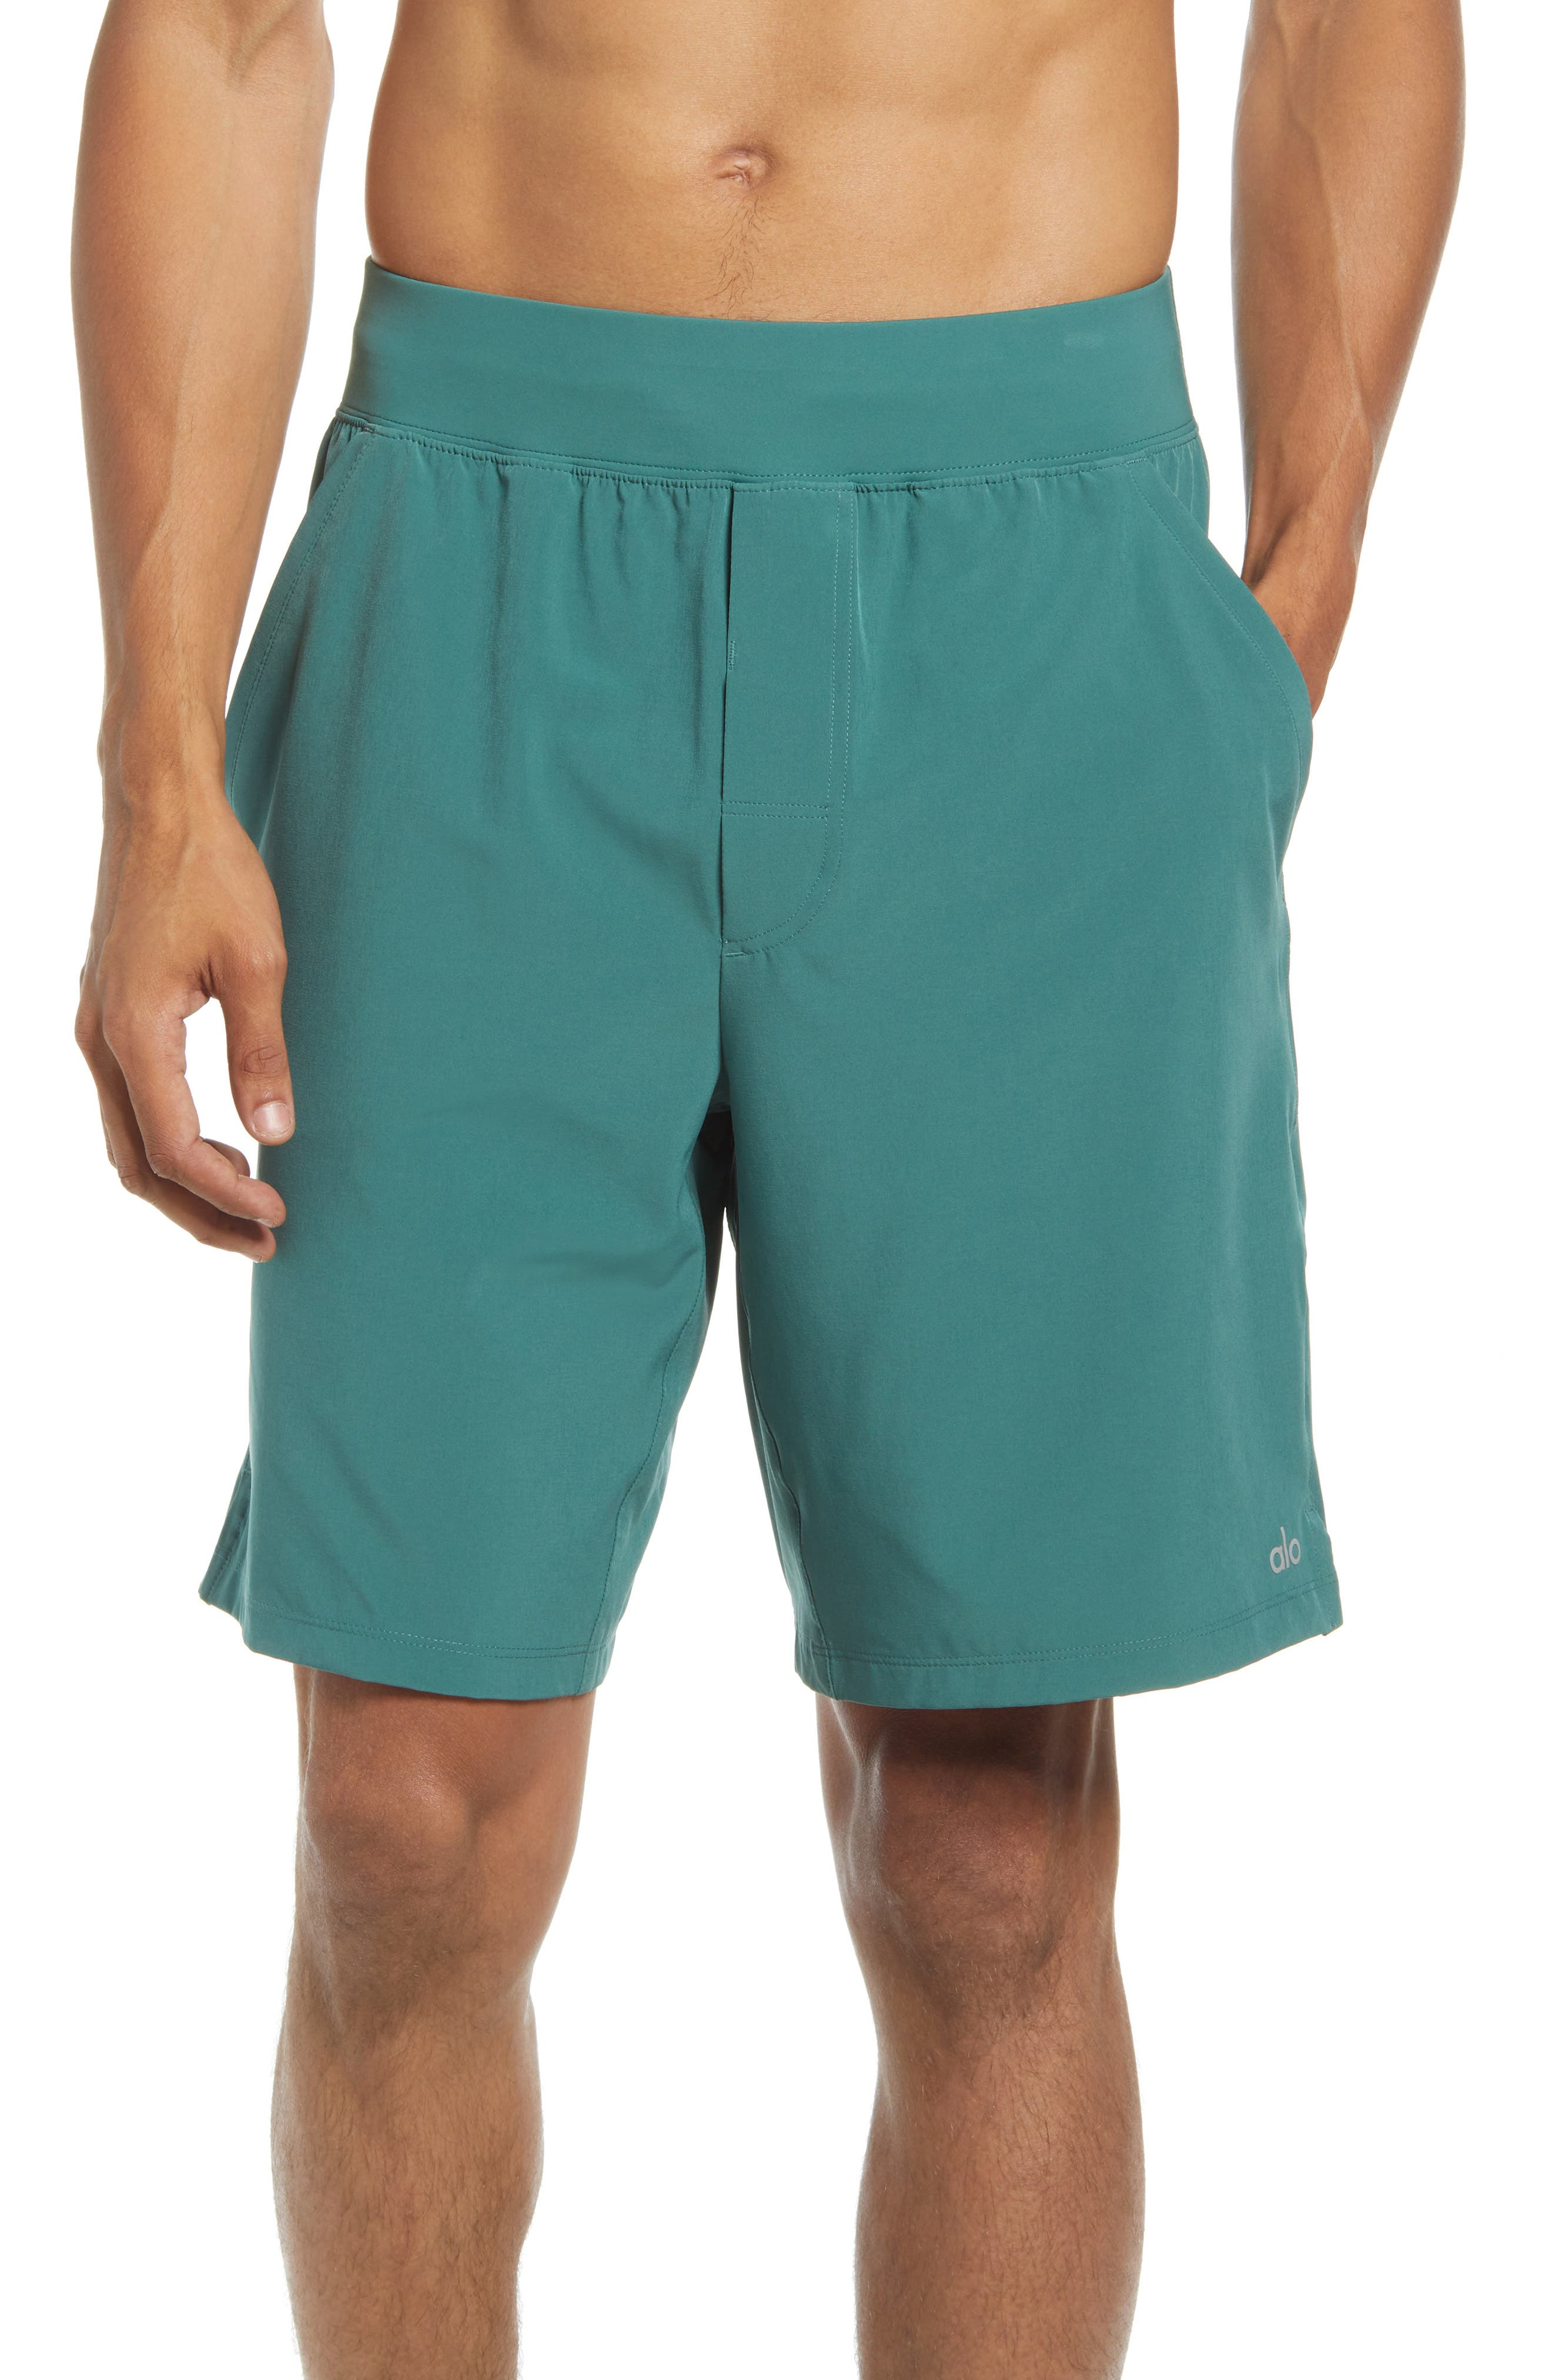 Repetition Shorts